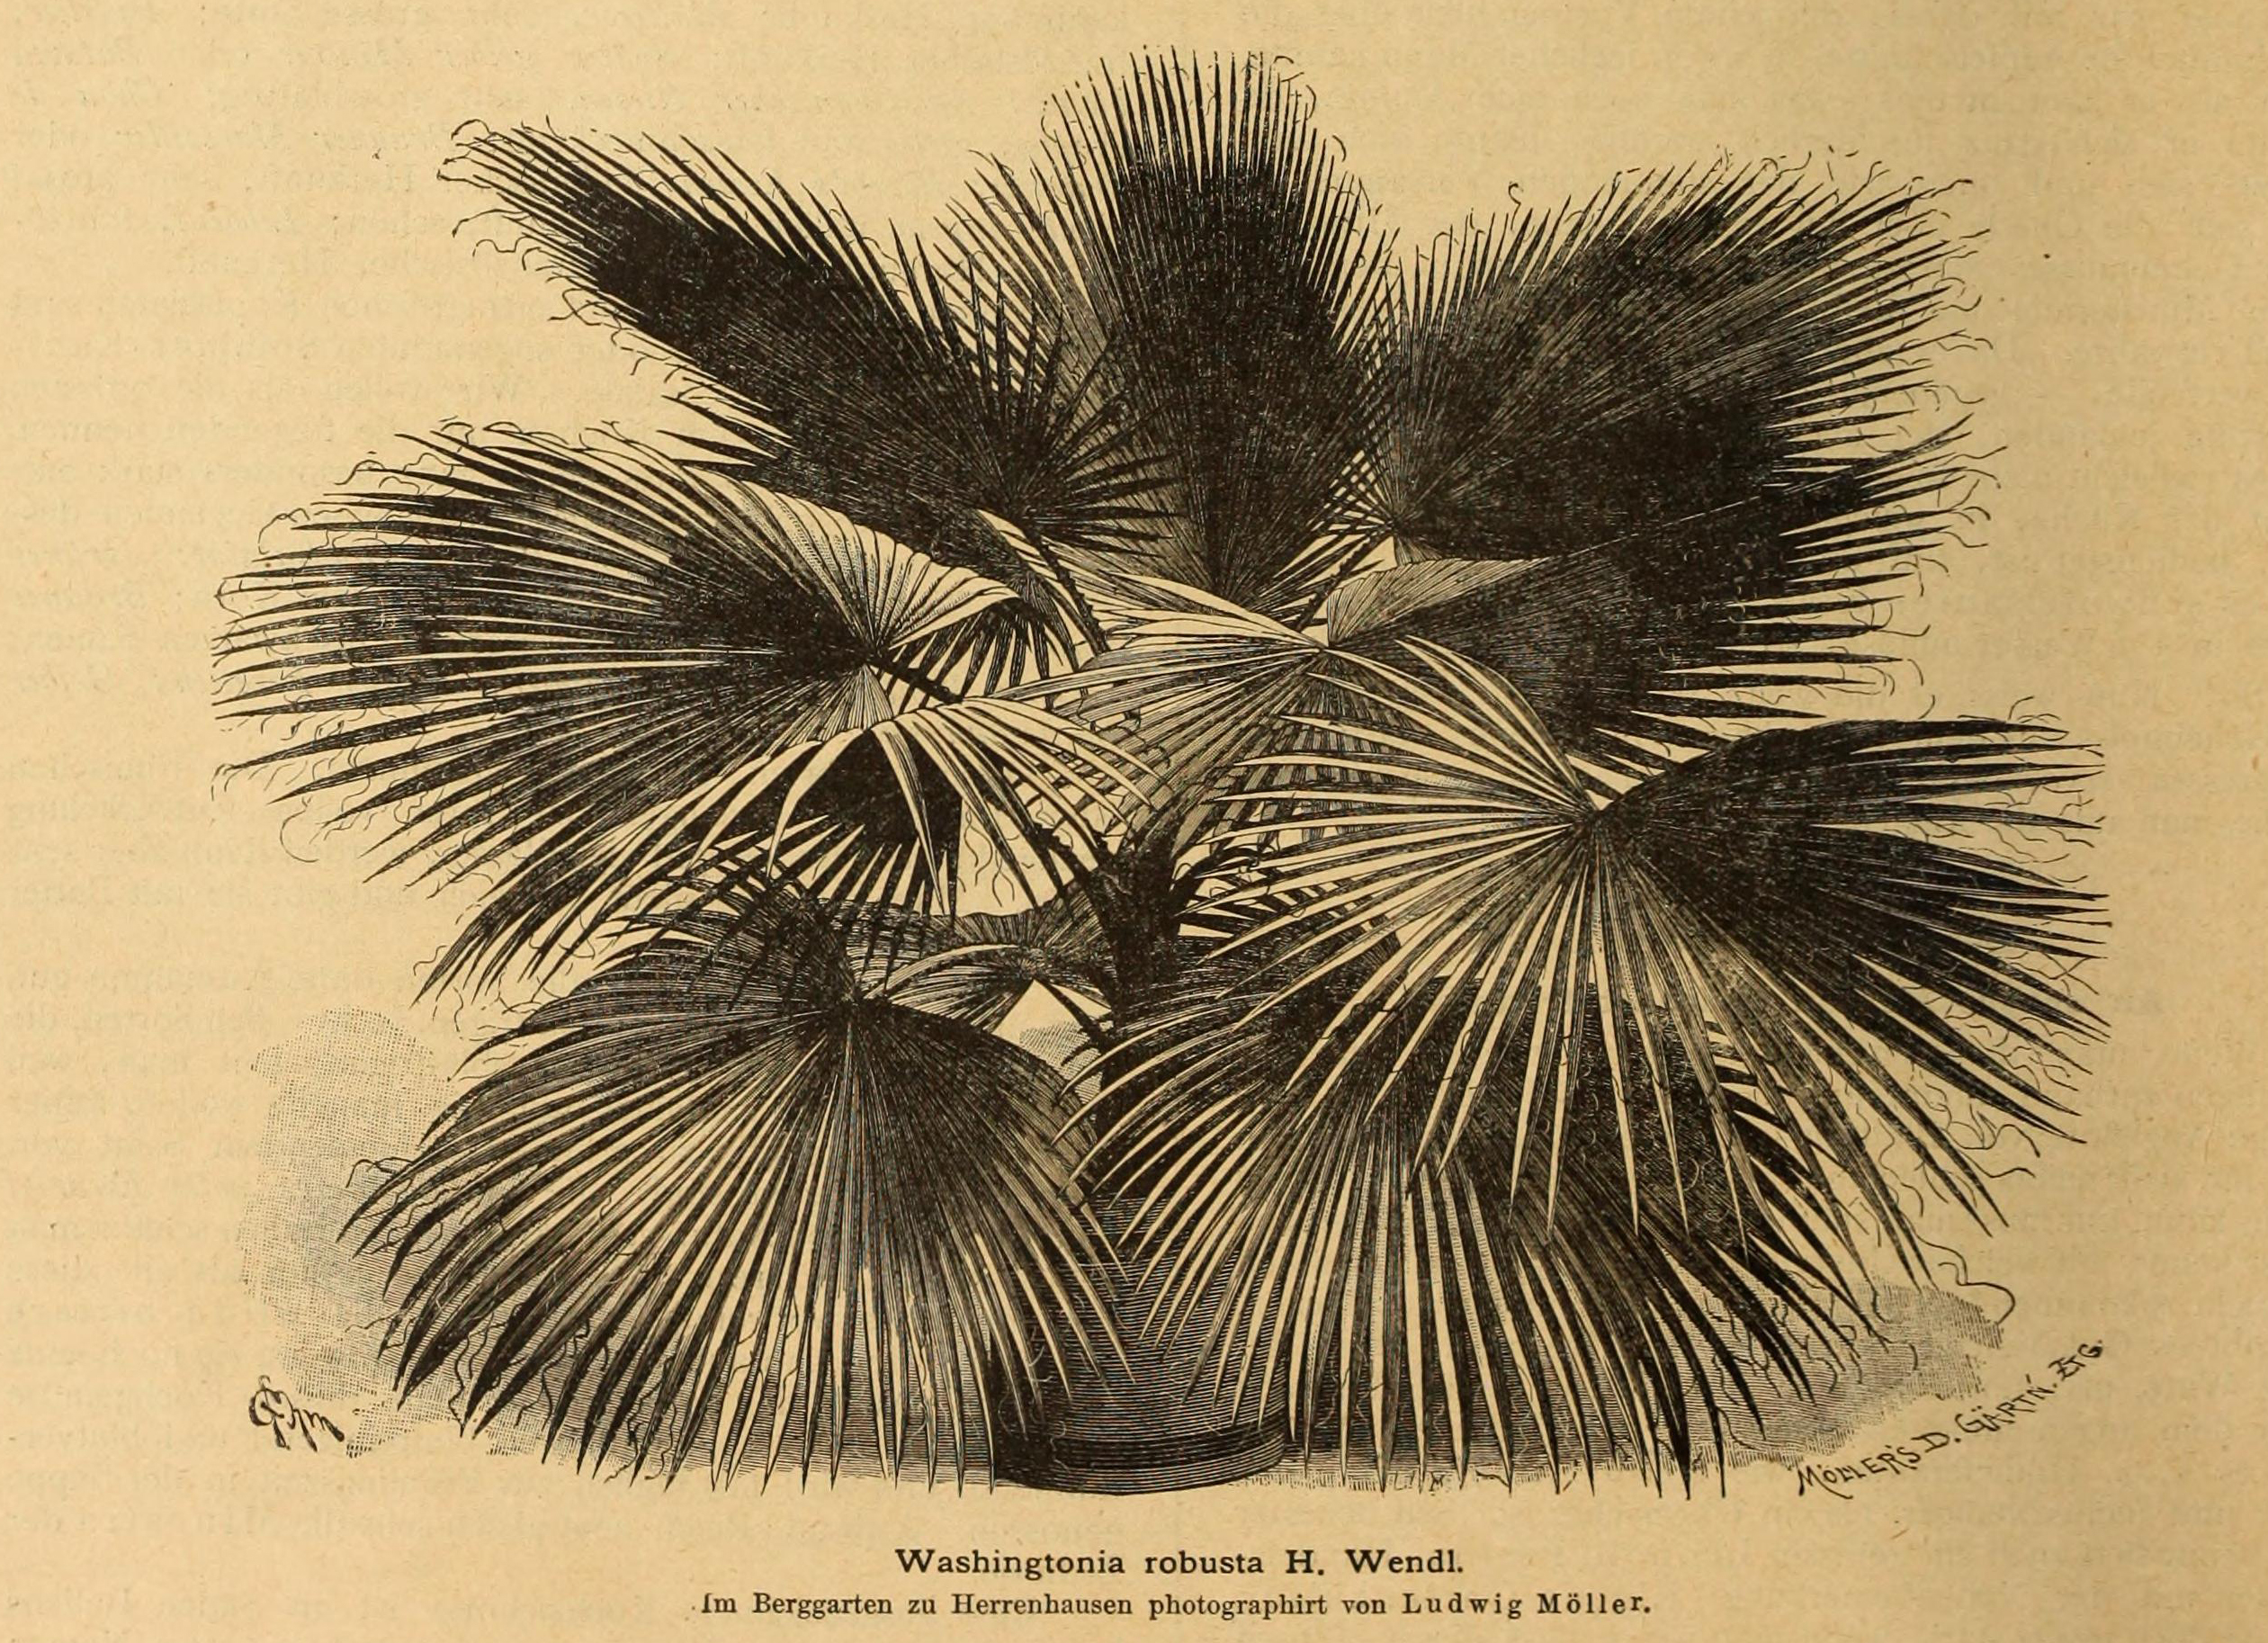 black and white illustration of a palm